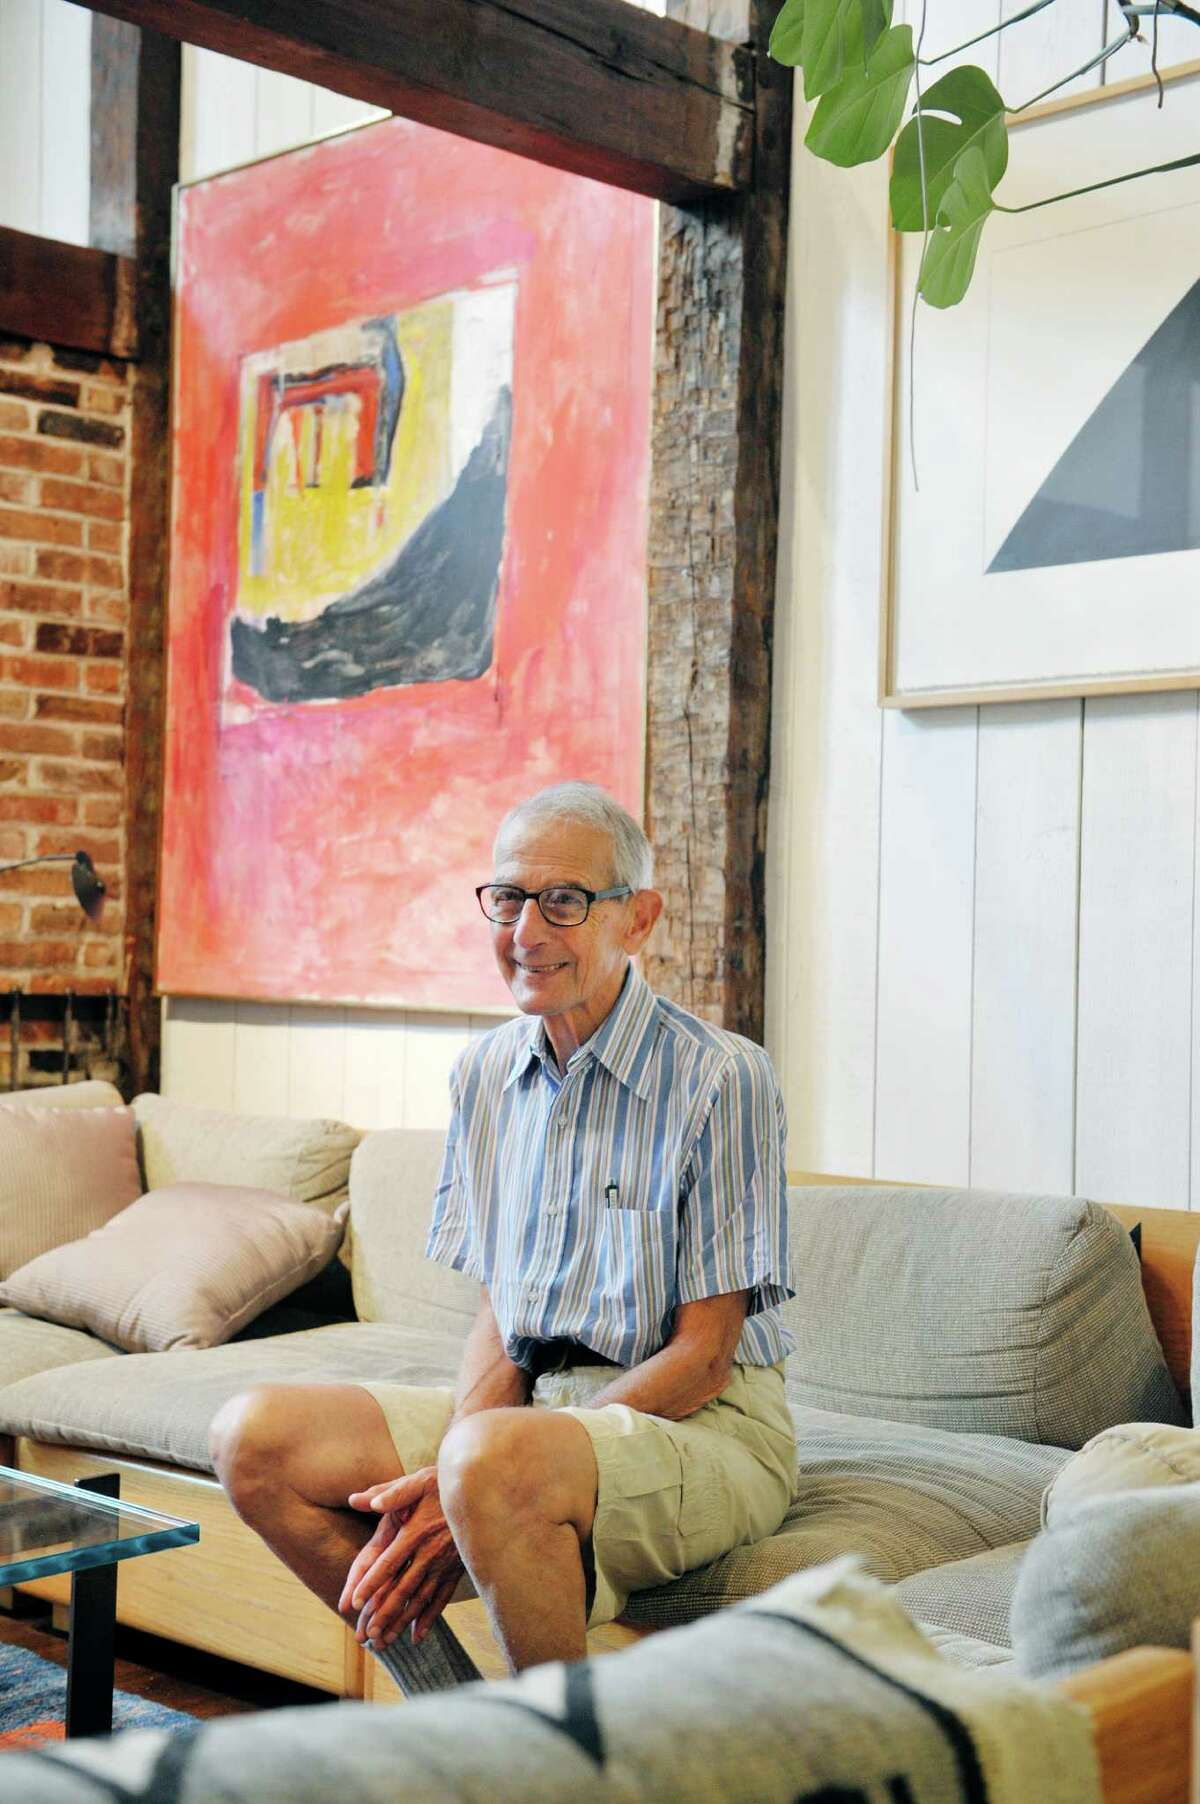 Werner Feibes, a retired architect, at his home on Tuesday, Aug. 25, 2015, in Schenectady, N.Y. In the background on the left is a painting by Paul Burlin, entitled Series of Nine #7, and on the right is a collage by Ellsworth Kelly entitled Slow Curve. (Paul Buckowski / Times Union)